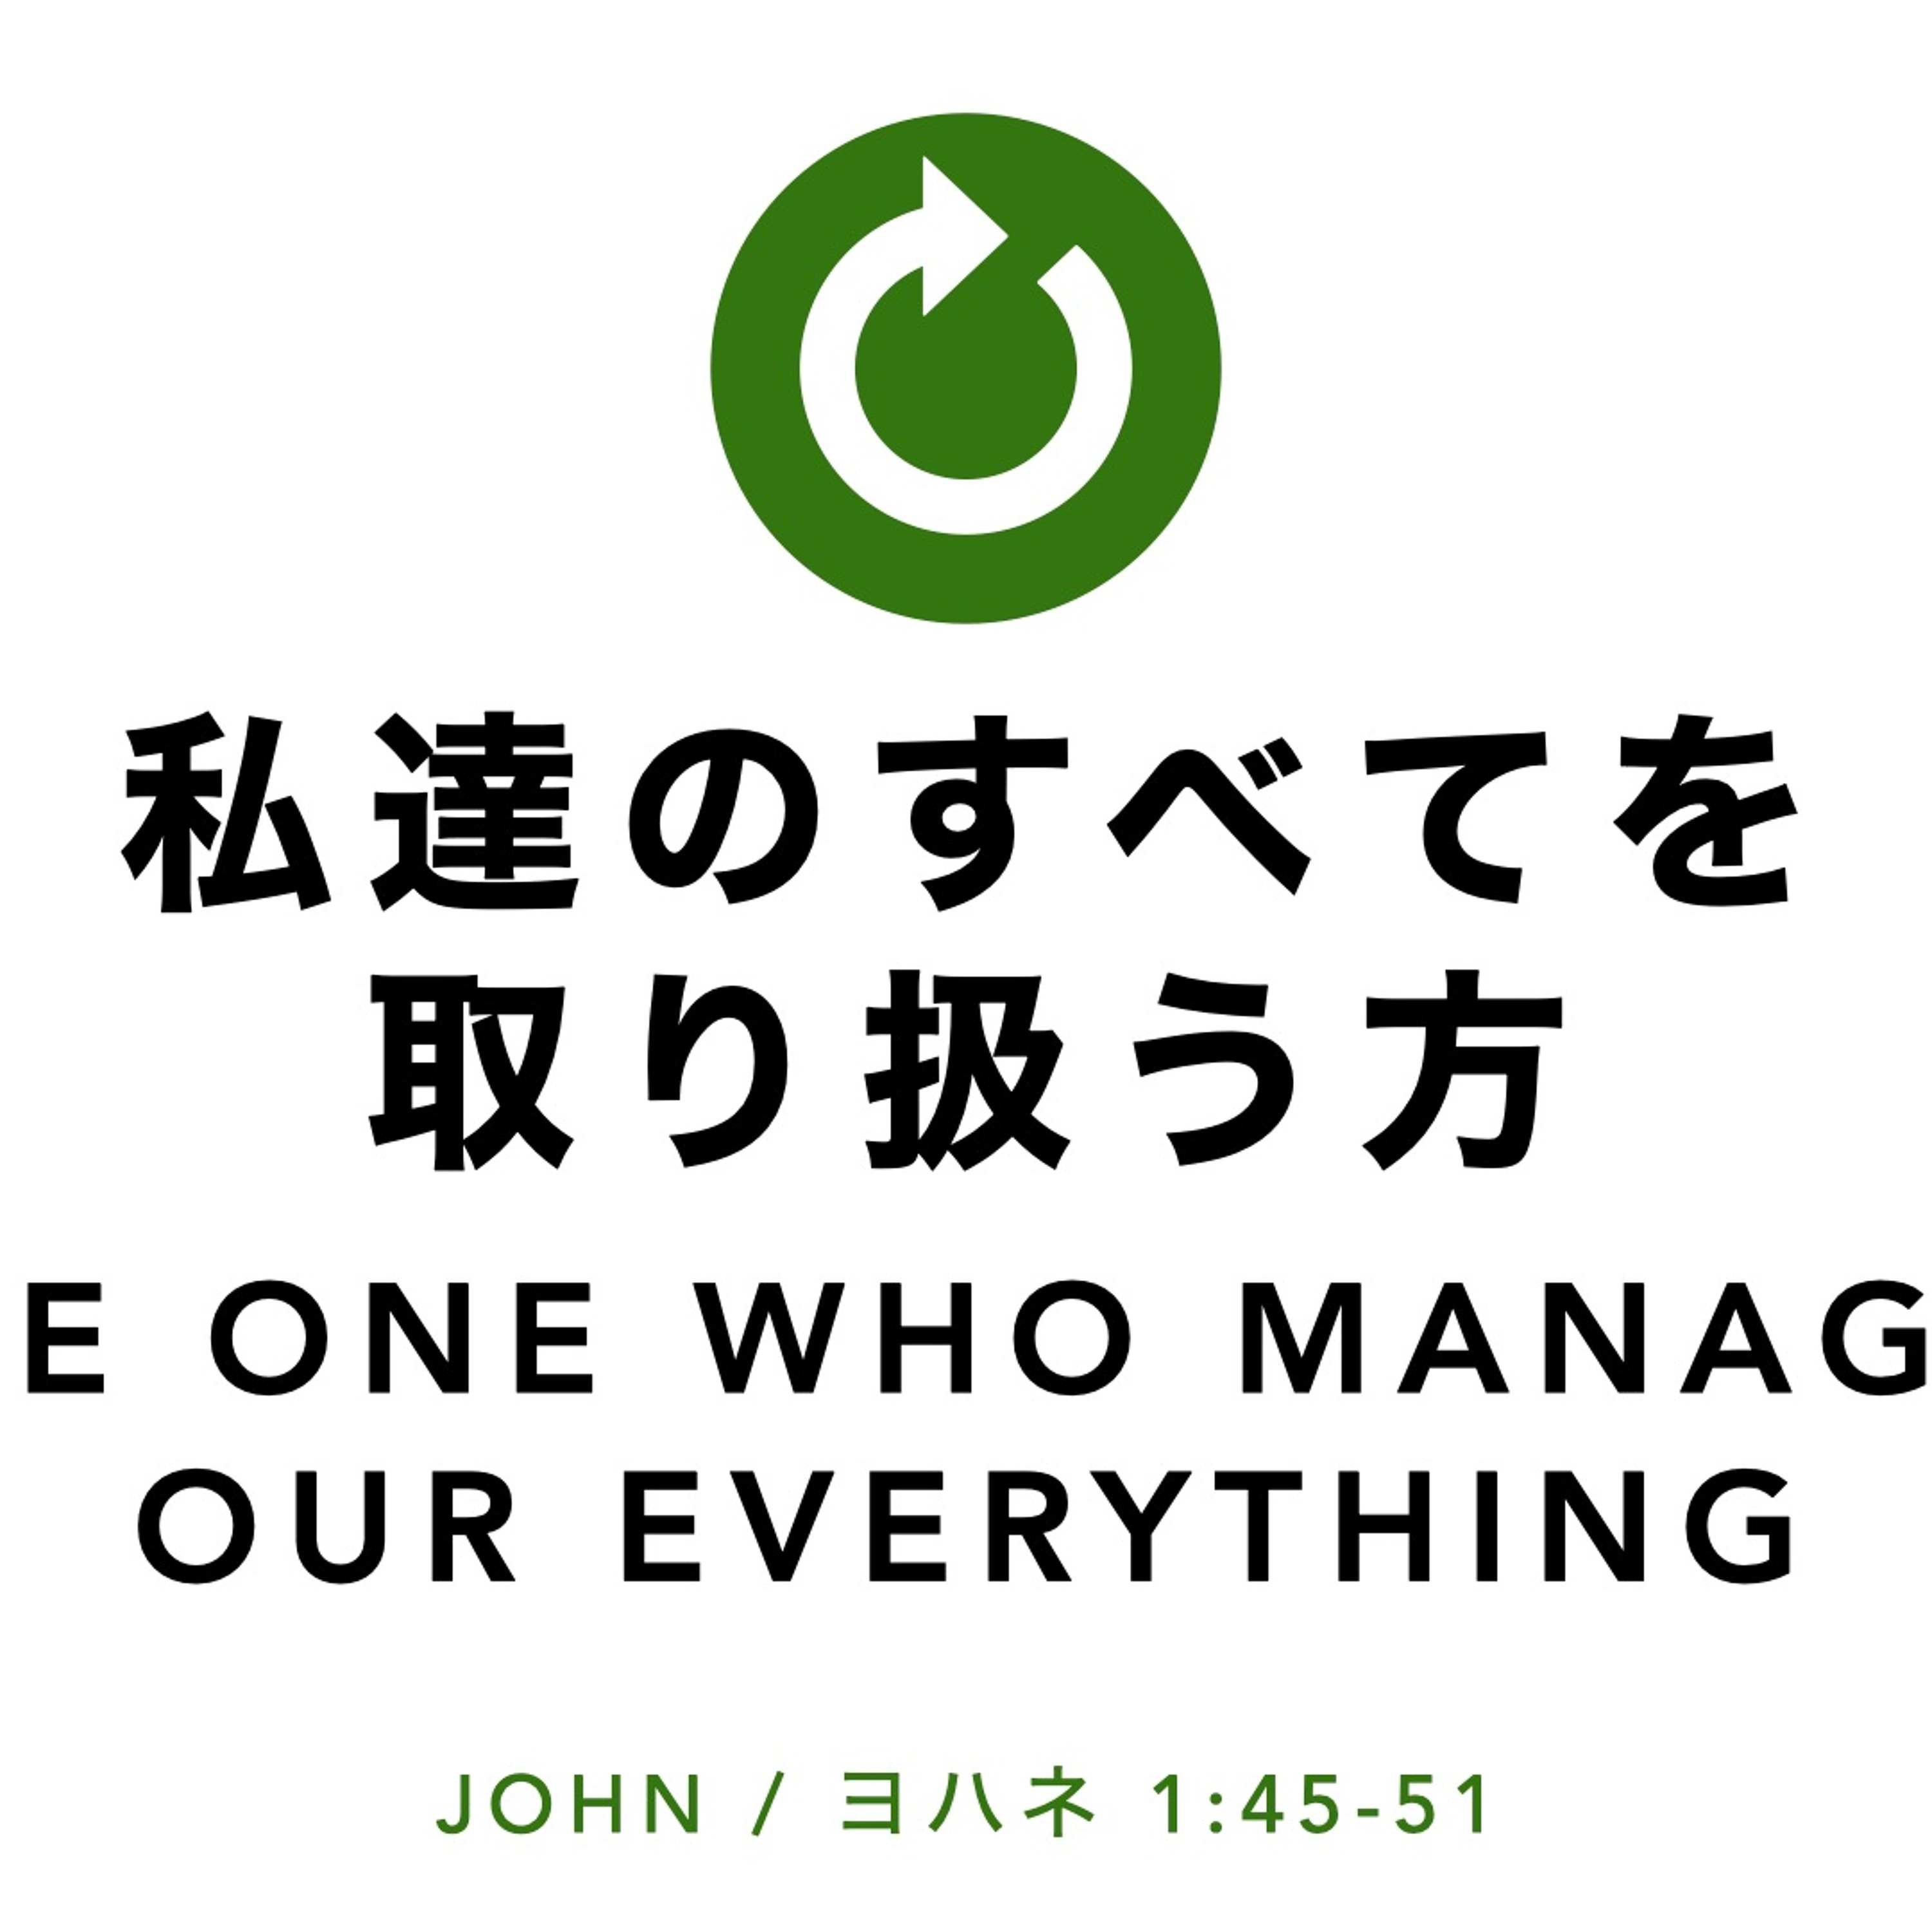 John / ヨハネ 1:45-51 - 私達のすべてを 取り扱う方 The One who Manages our Everything